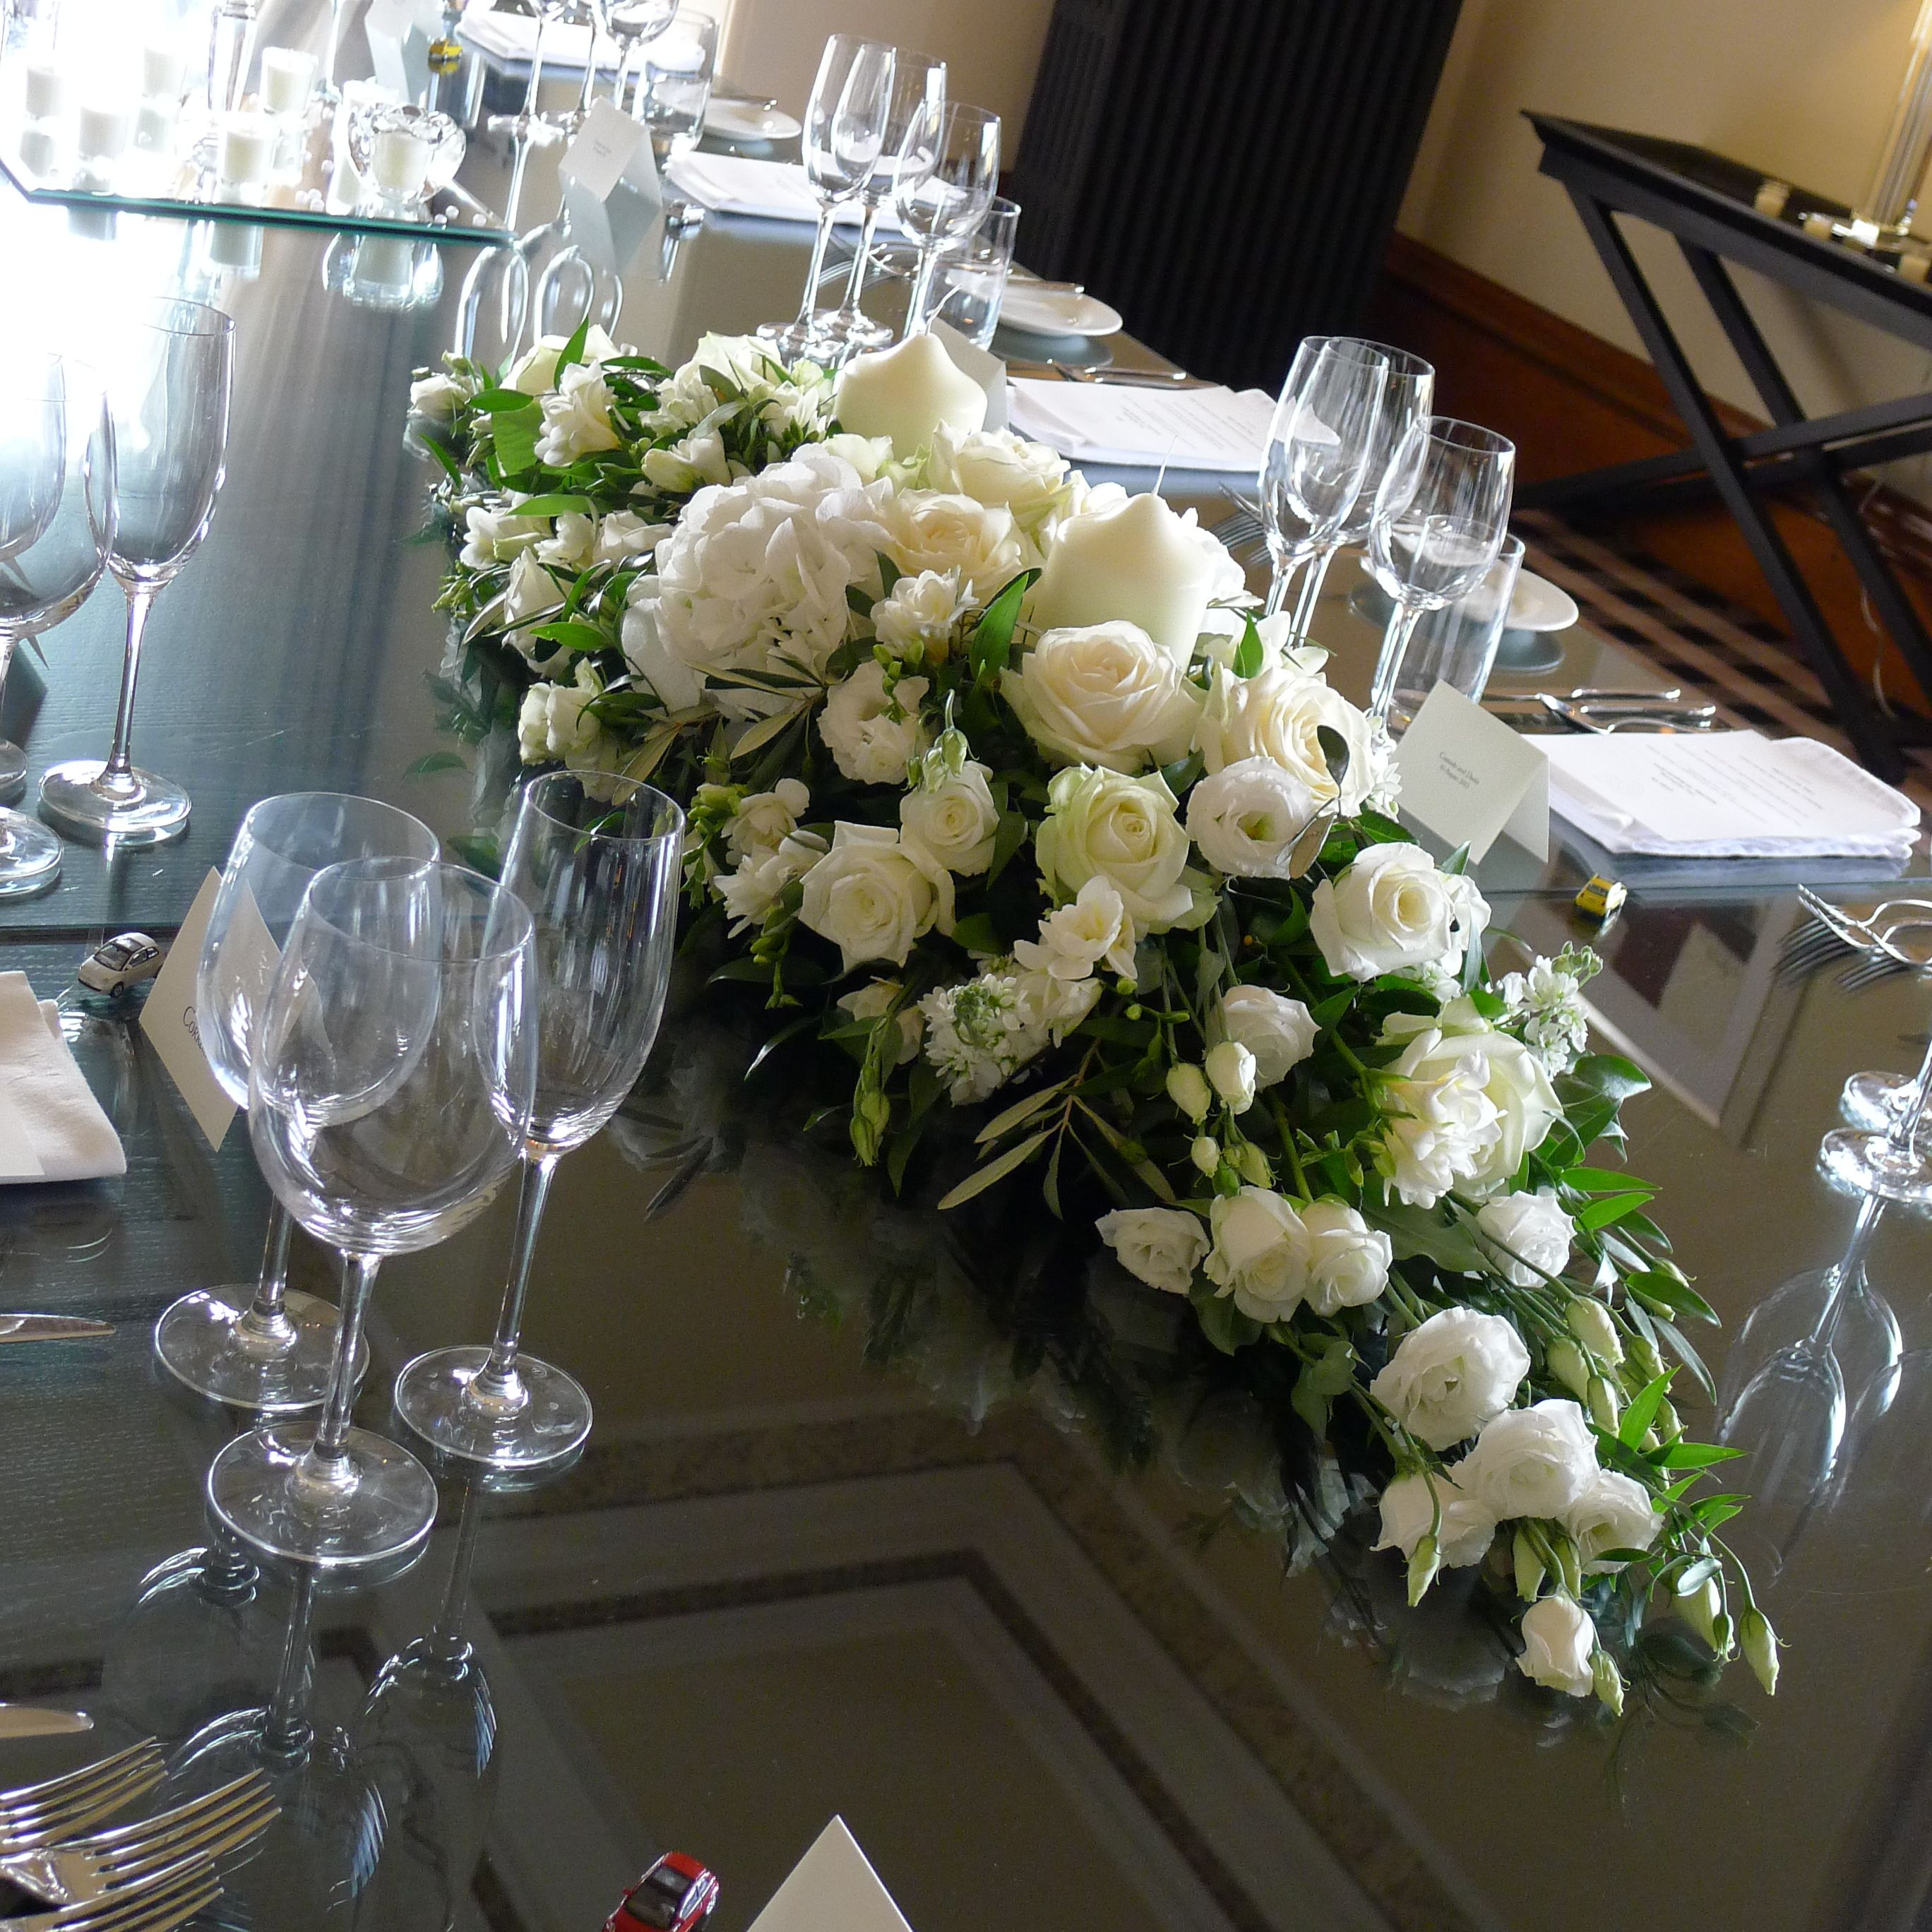 A long and low table centrepiece made up of whites creams